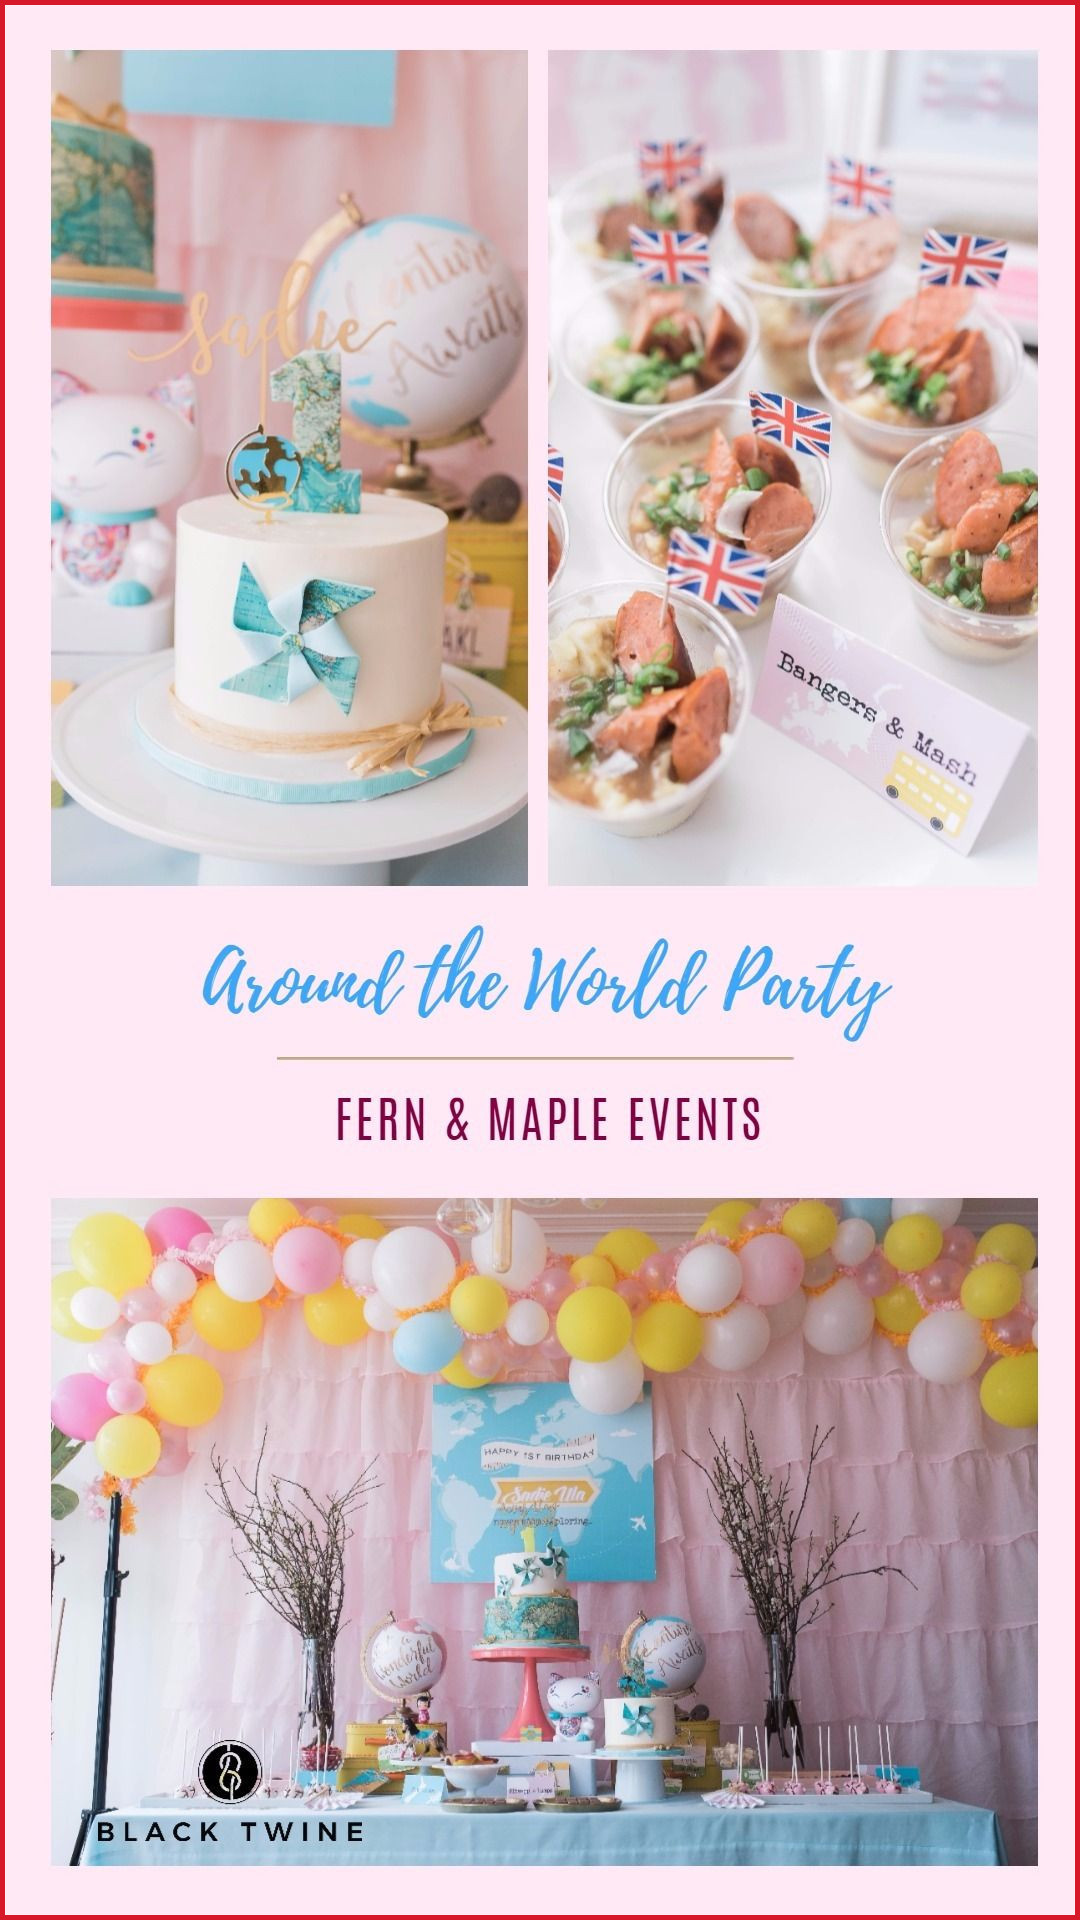 Best ideas about Birthday Decorations Near Me . Save or Pin Elegant 1st Birthday Party Venues Near Me Gallery Now.